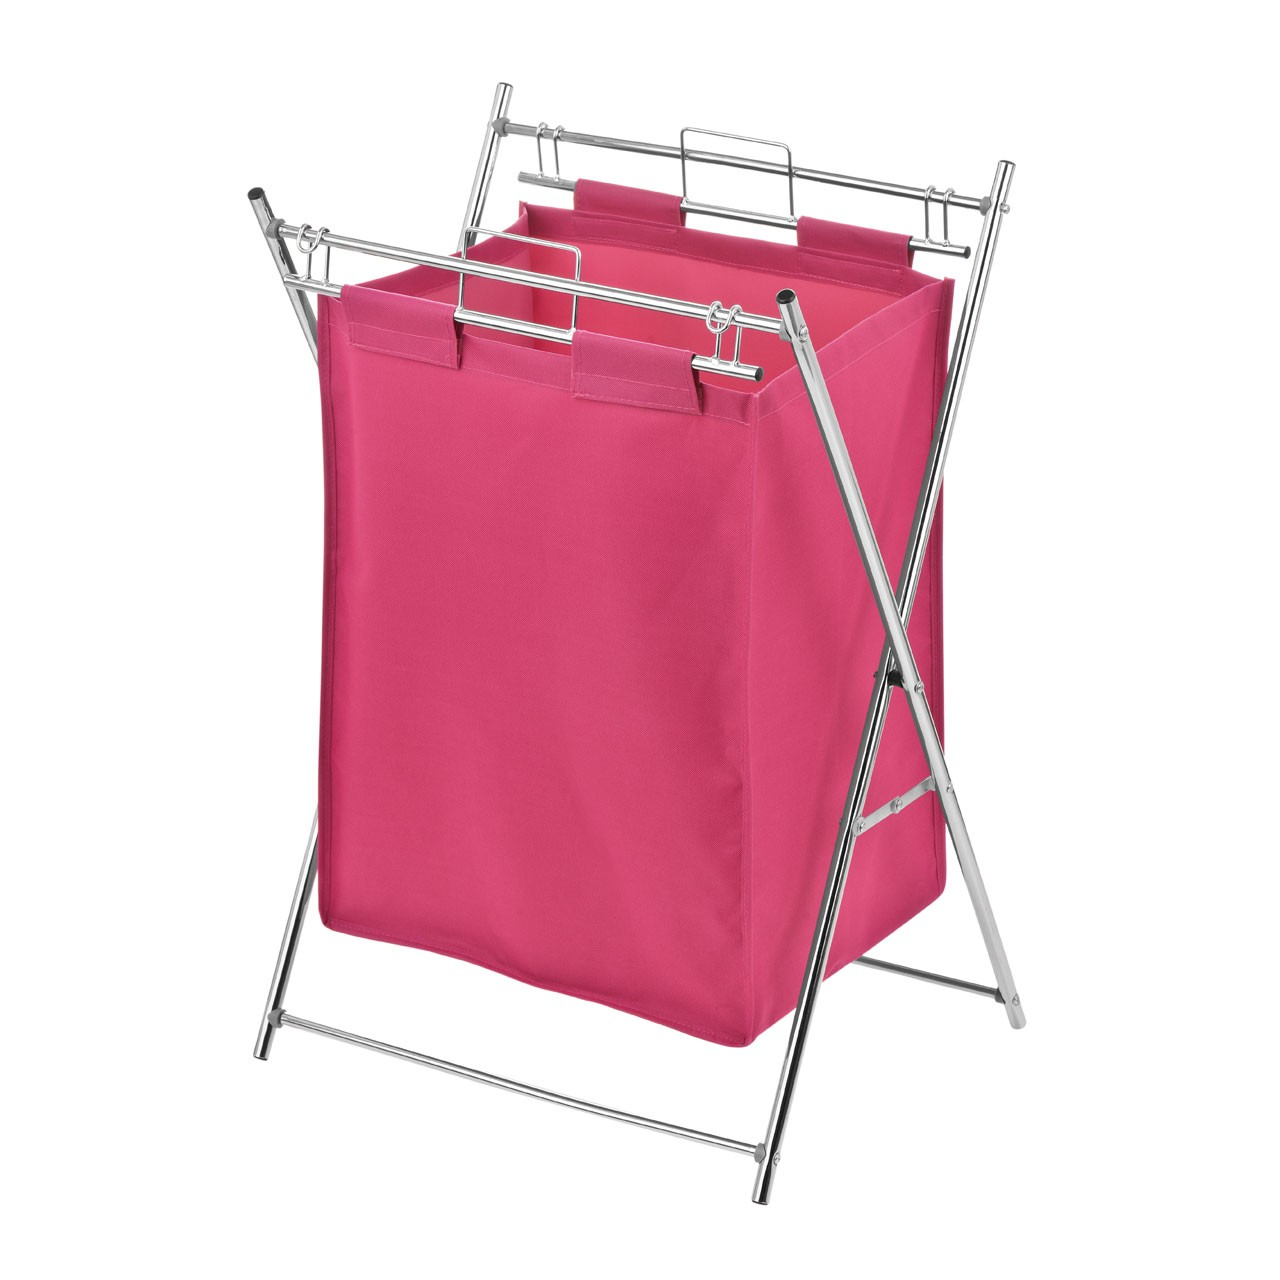 Laundry Bag with Chrome Frame - Pink